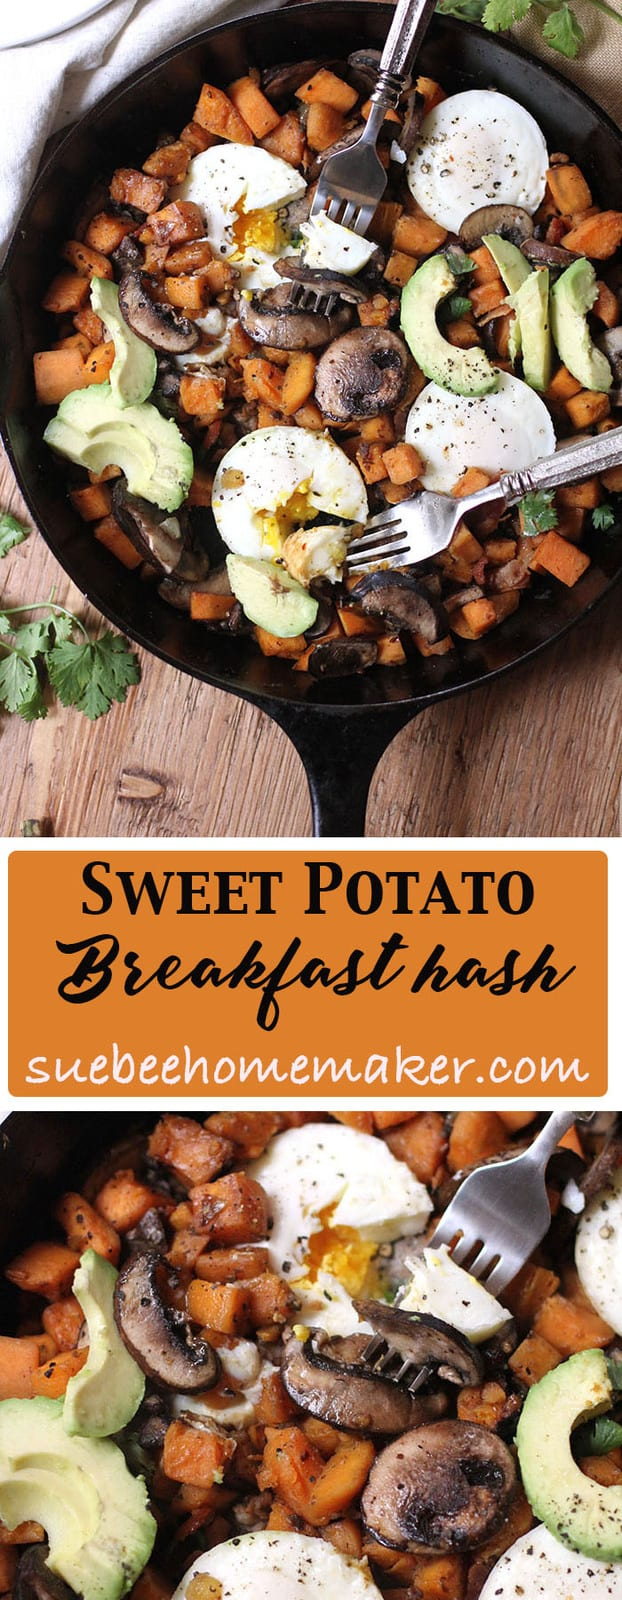 Make this easy Sweet Potato Breakfast Hash for a perfect lazy day brunch. #poachedeggs #sweetpotatoes #bacon #breakfasthash #brunch #weekendmode | suebeehomemaker.com